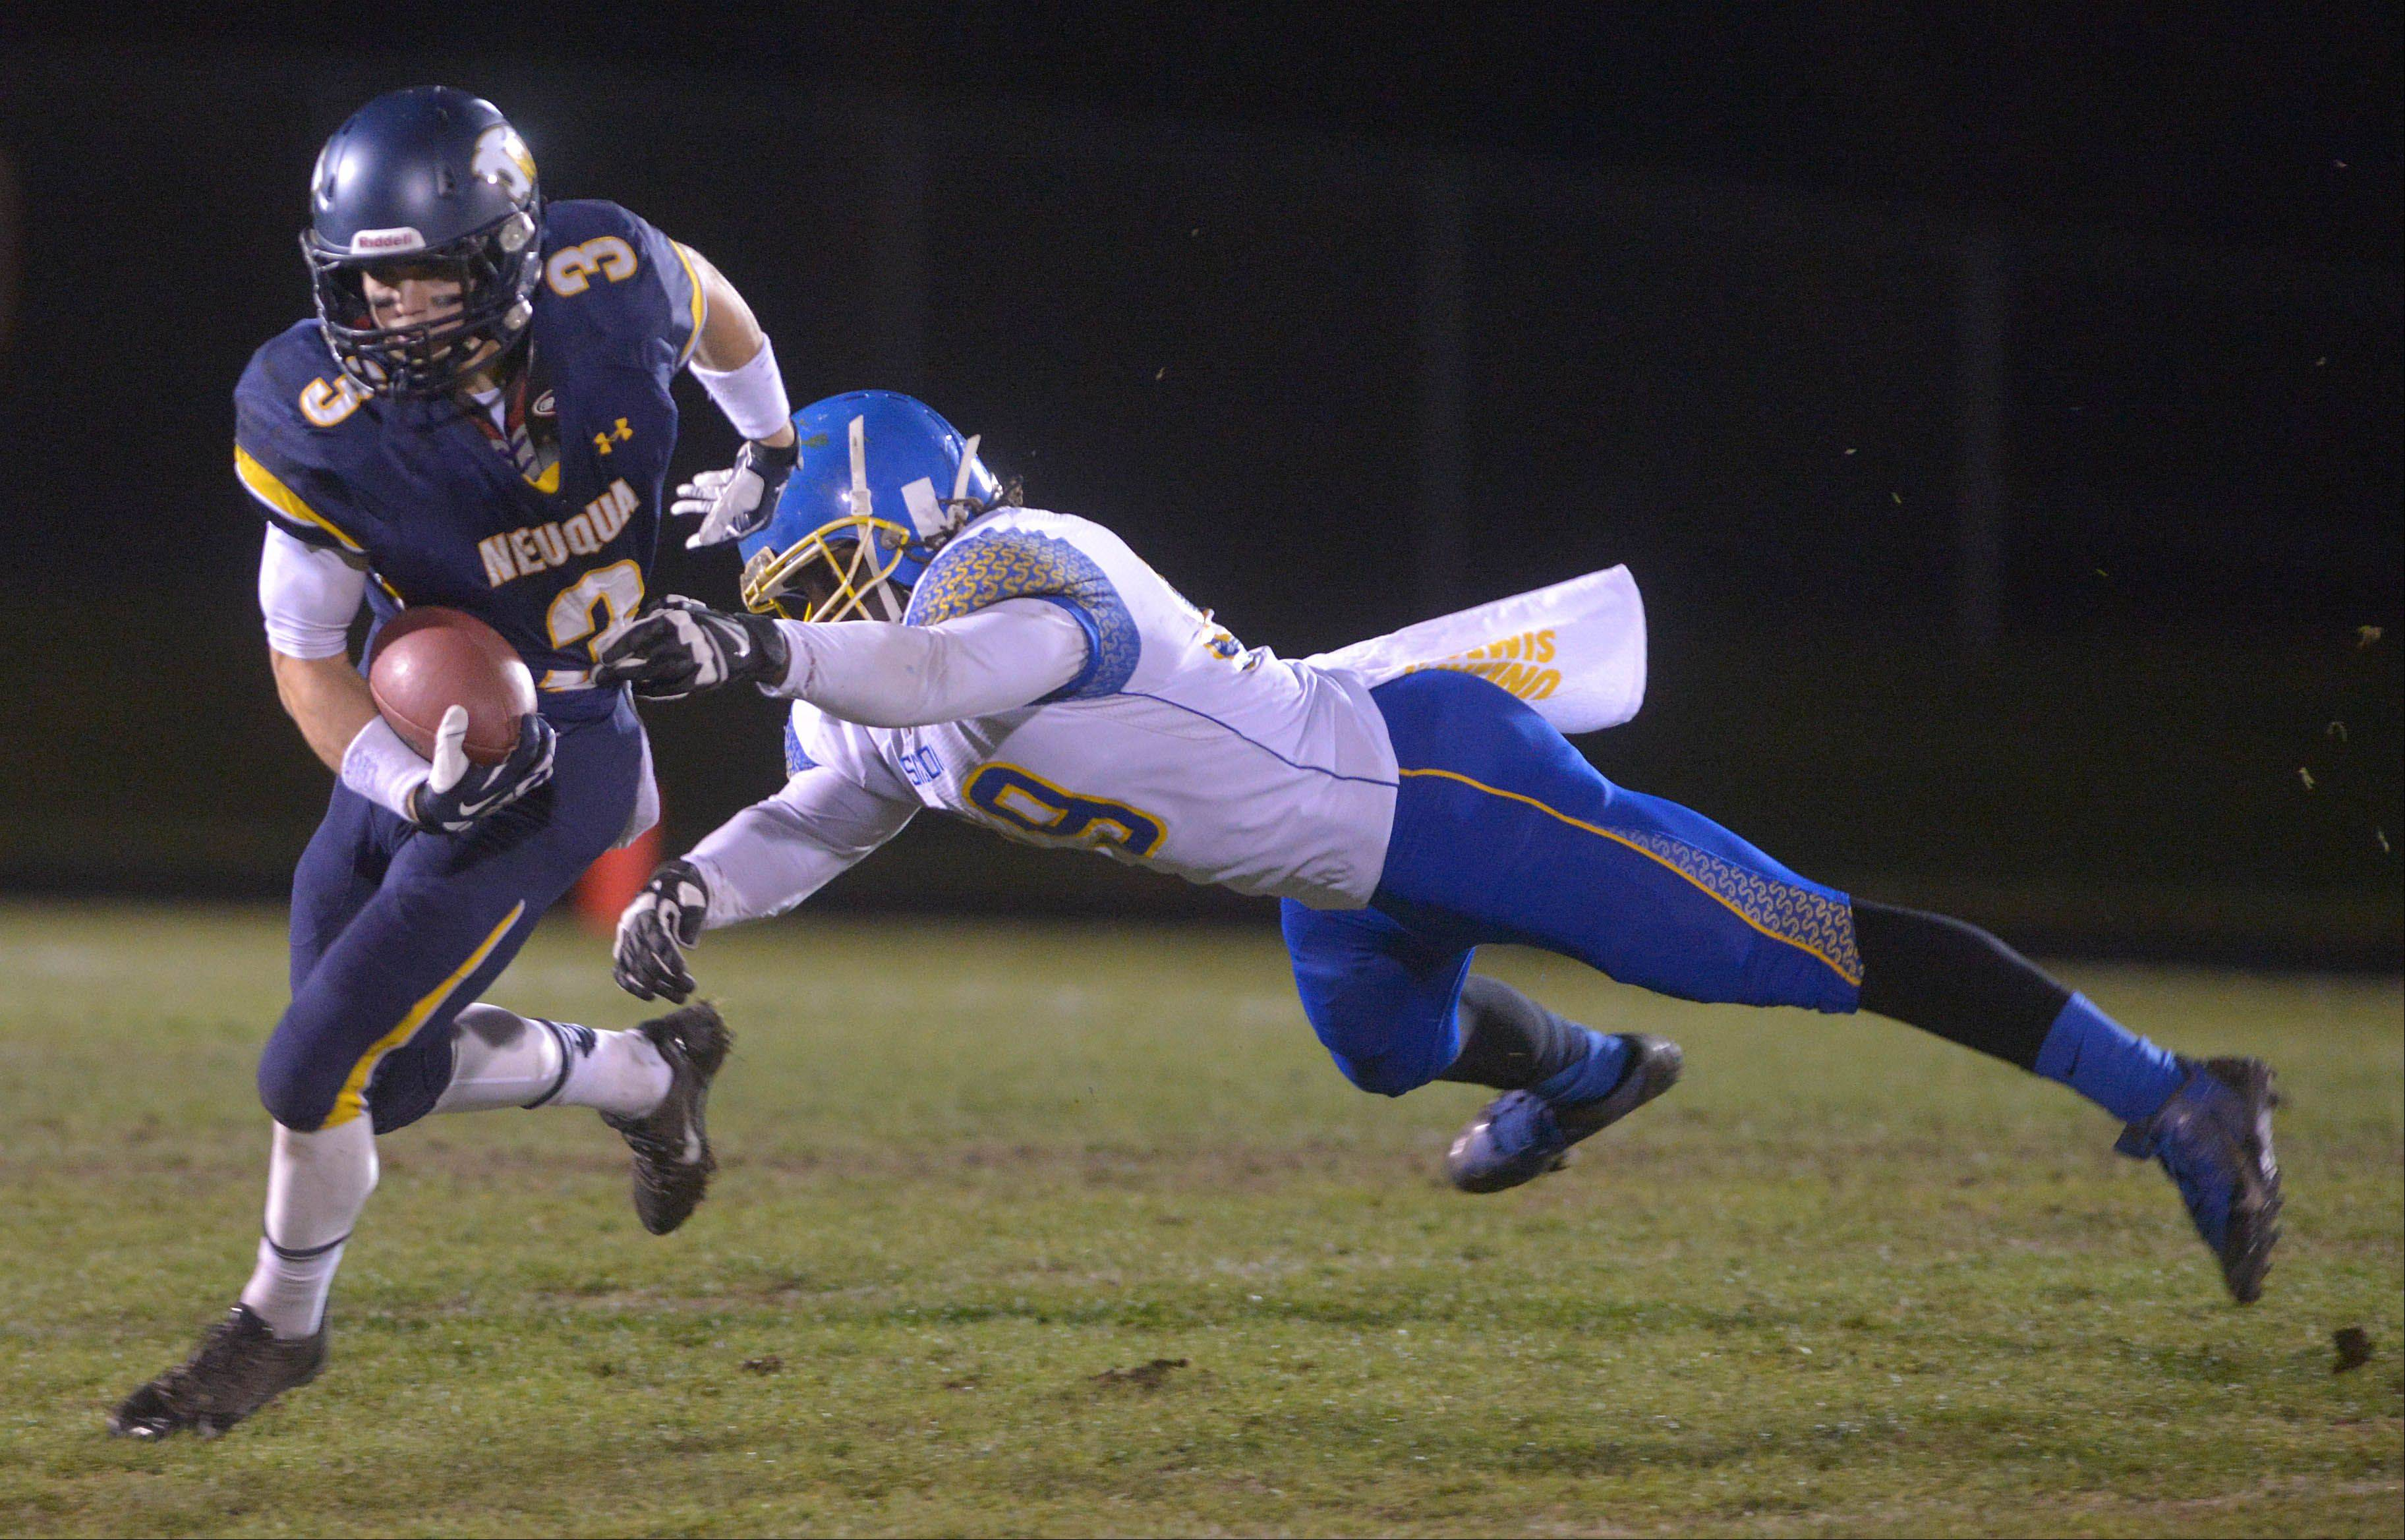 Images: Simeon vs. Neuqua Valley IHSA round two football playoffs.